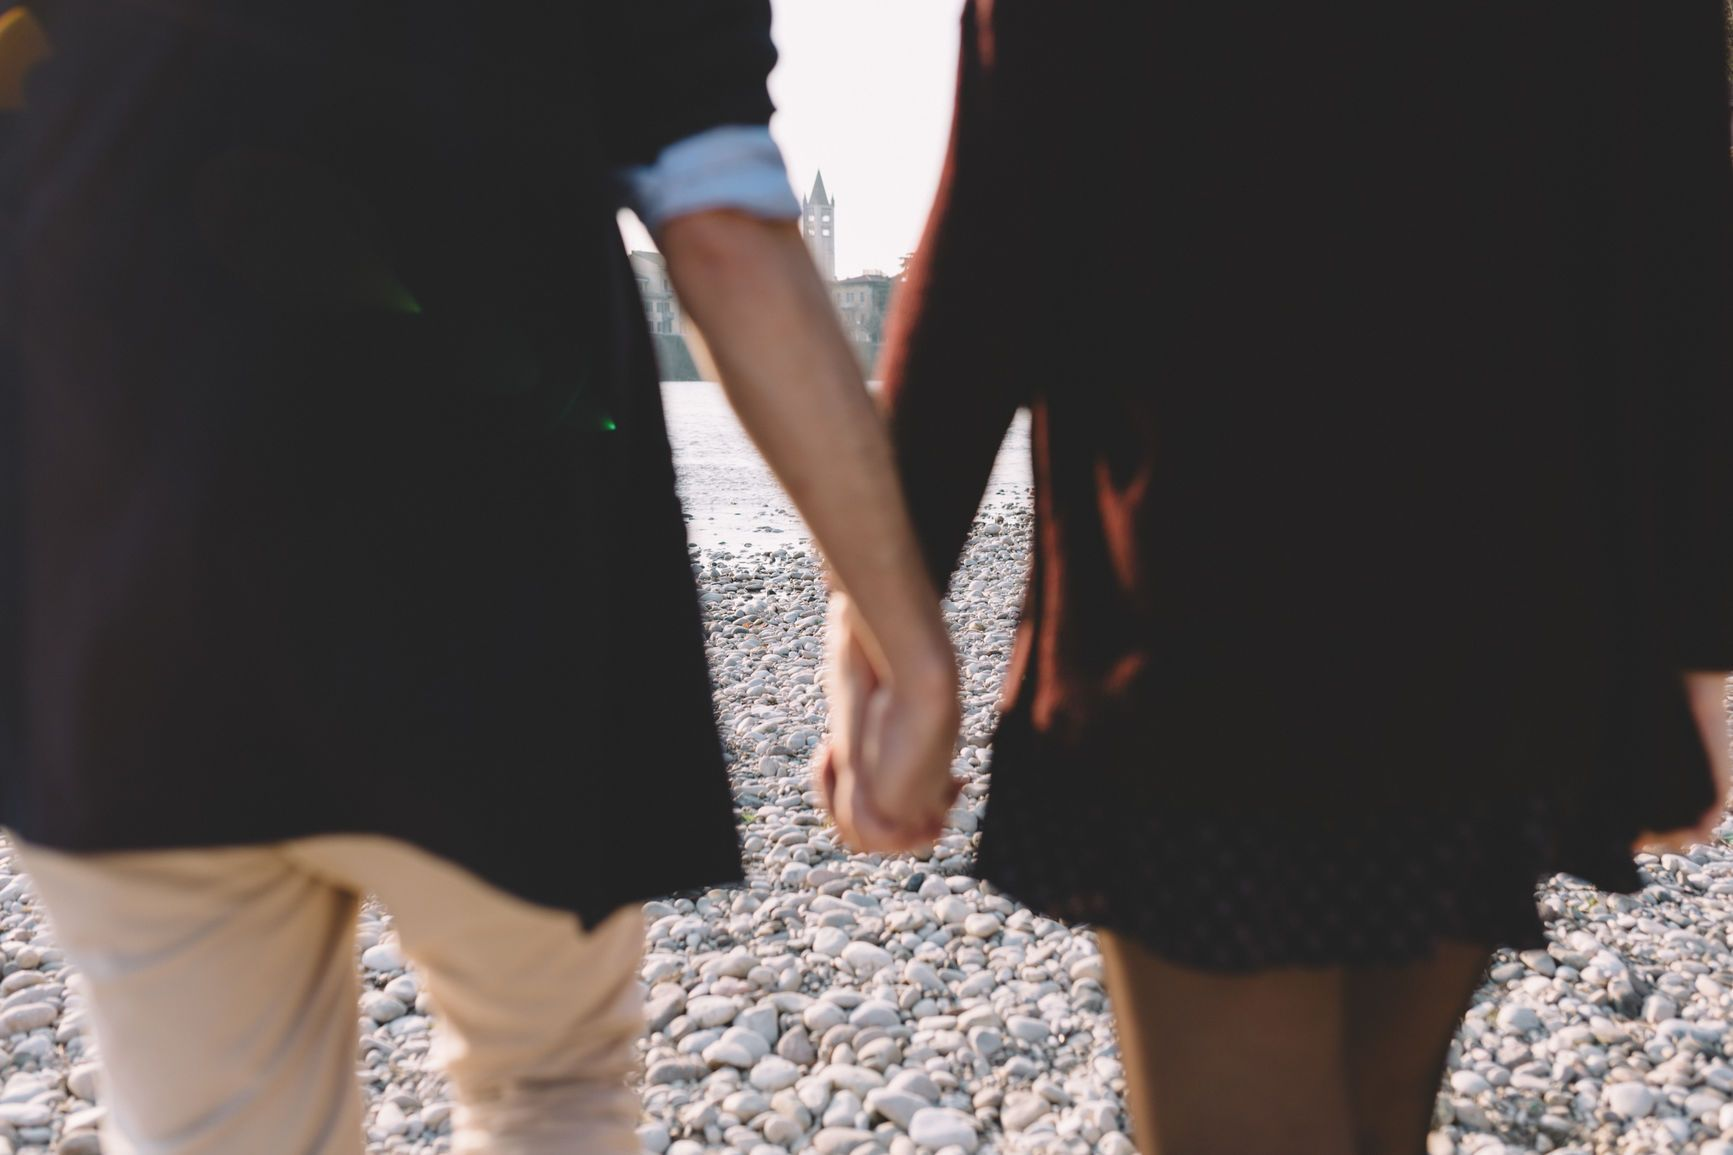 I Broke Up With My Best Friend to Find Love